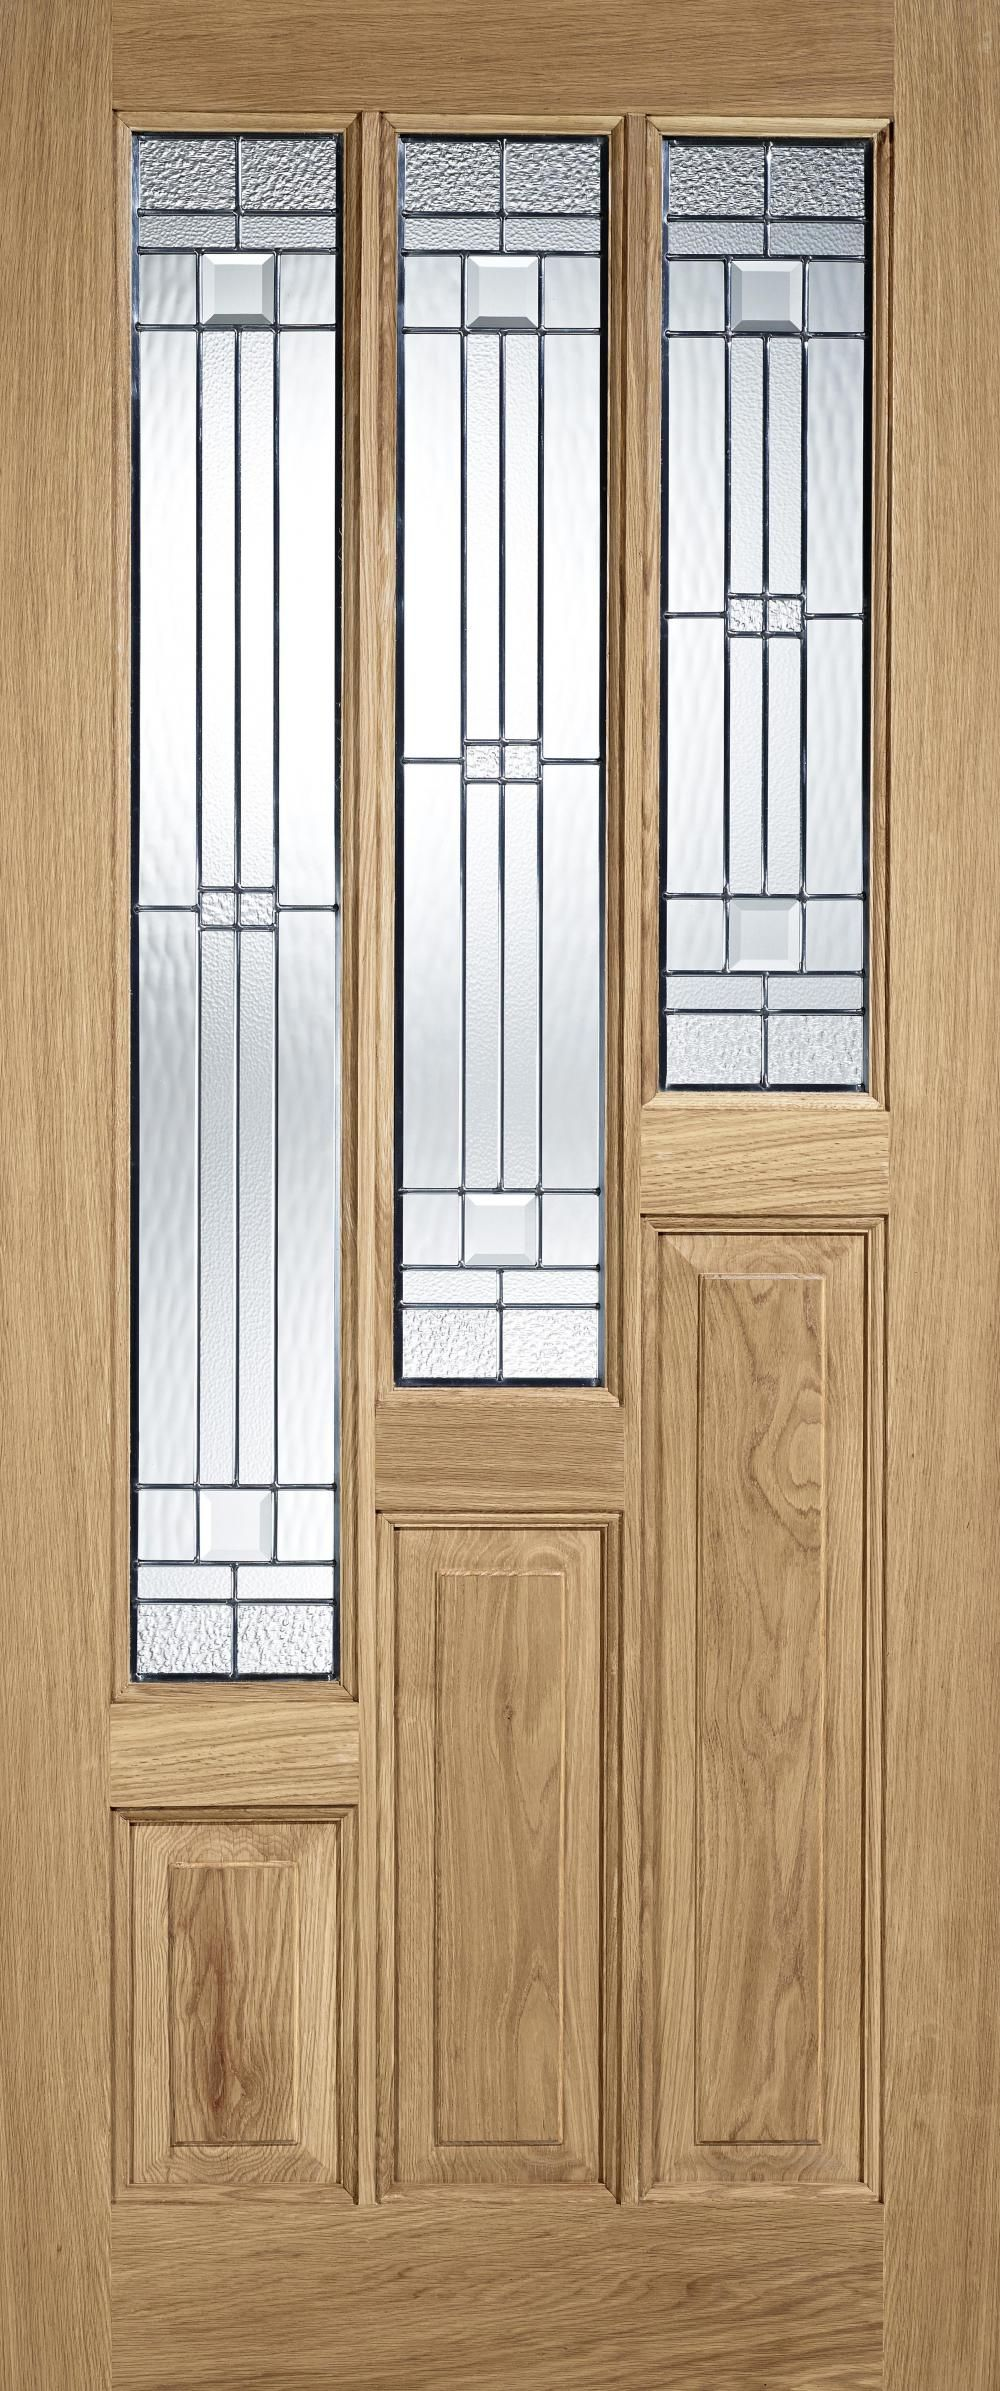 lots of glass in the front door Coventry Elegant | LPD Doors & lots of glass in the front door Coventry Elegant | LPD Doors | reno ...